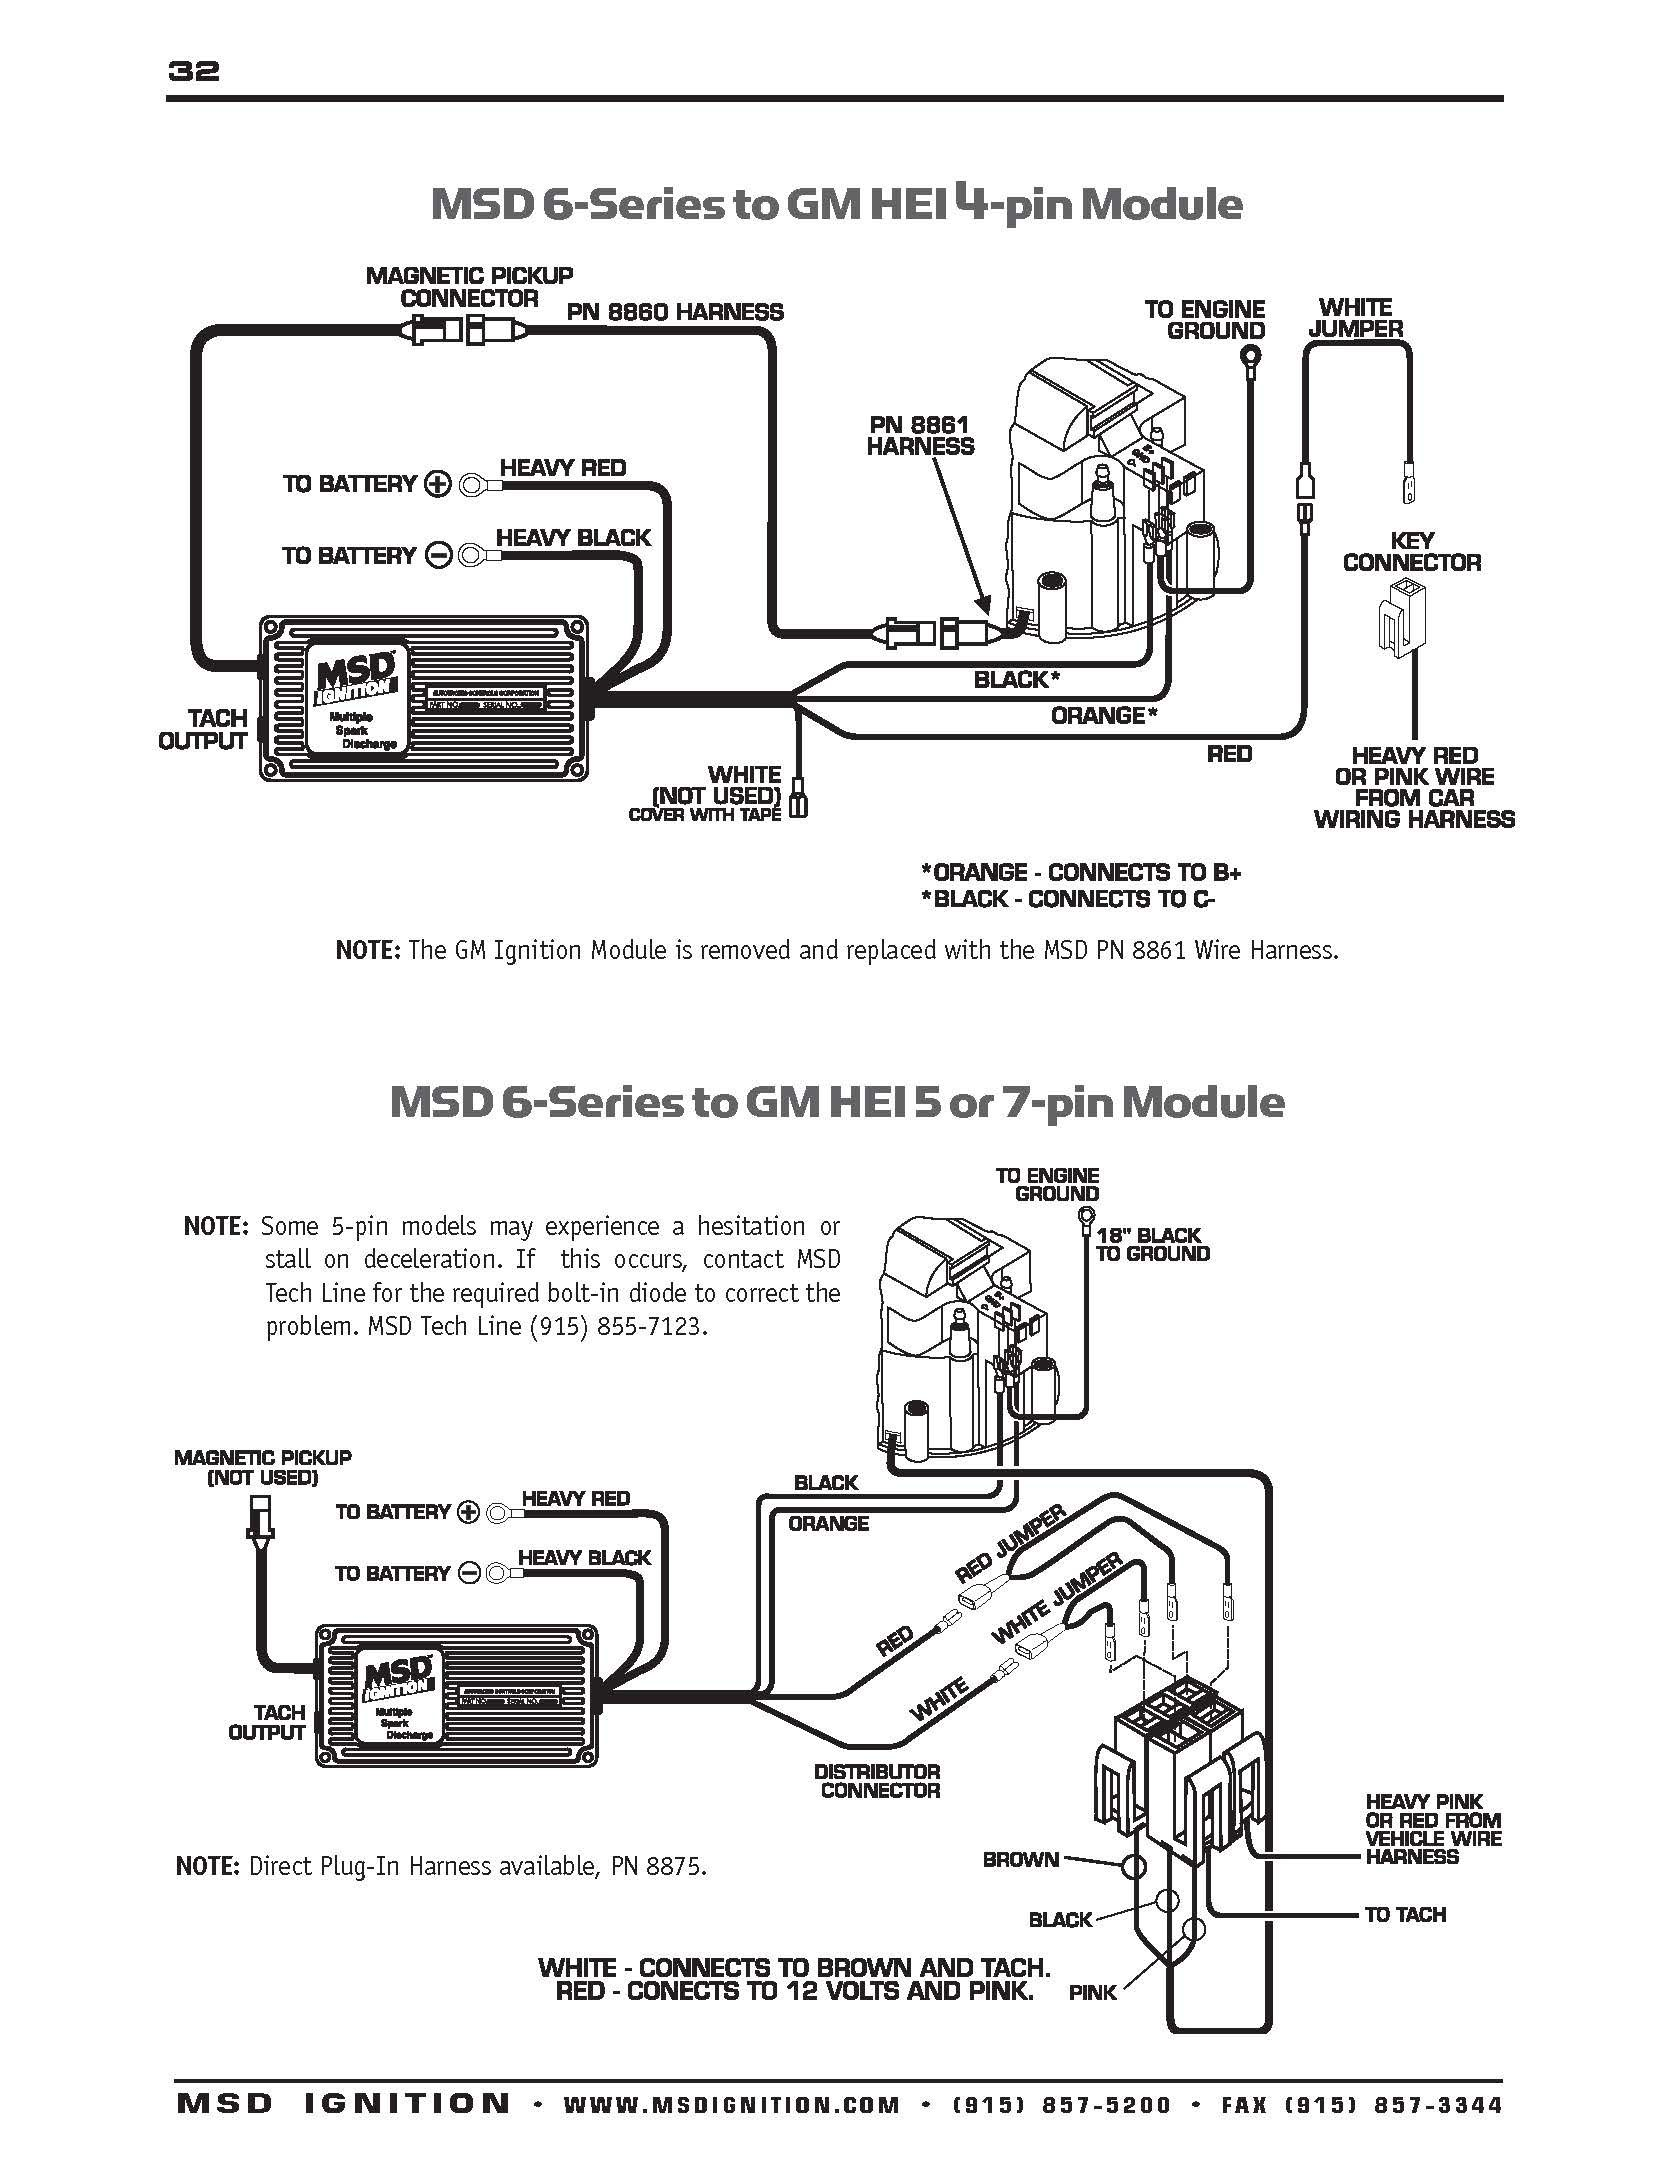 msd ignition wiring diagrams 1966 chevelle cars chevy wire msd 5520 wiring diagram msd ford wiring diagrams testing with meter [ 1675 x 2175 Pixel ]